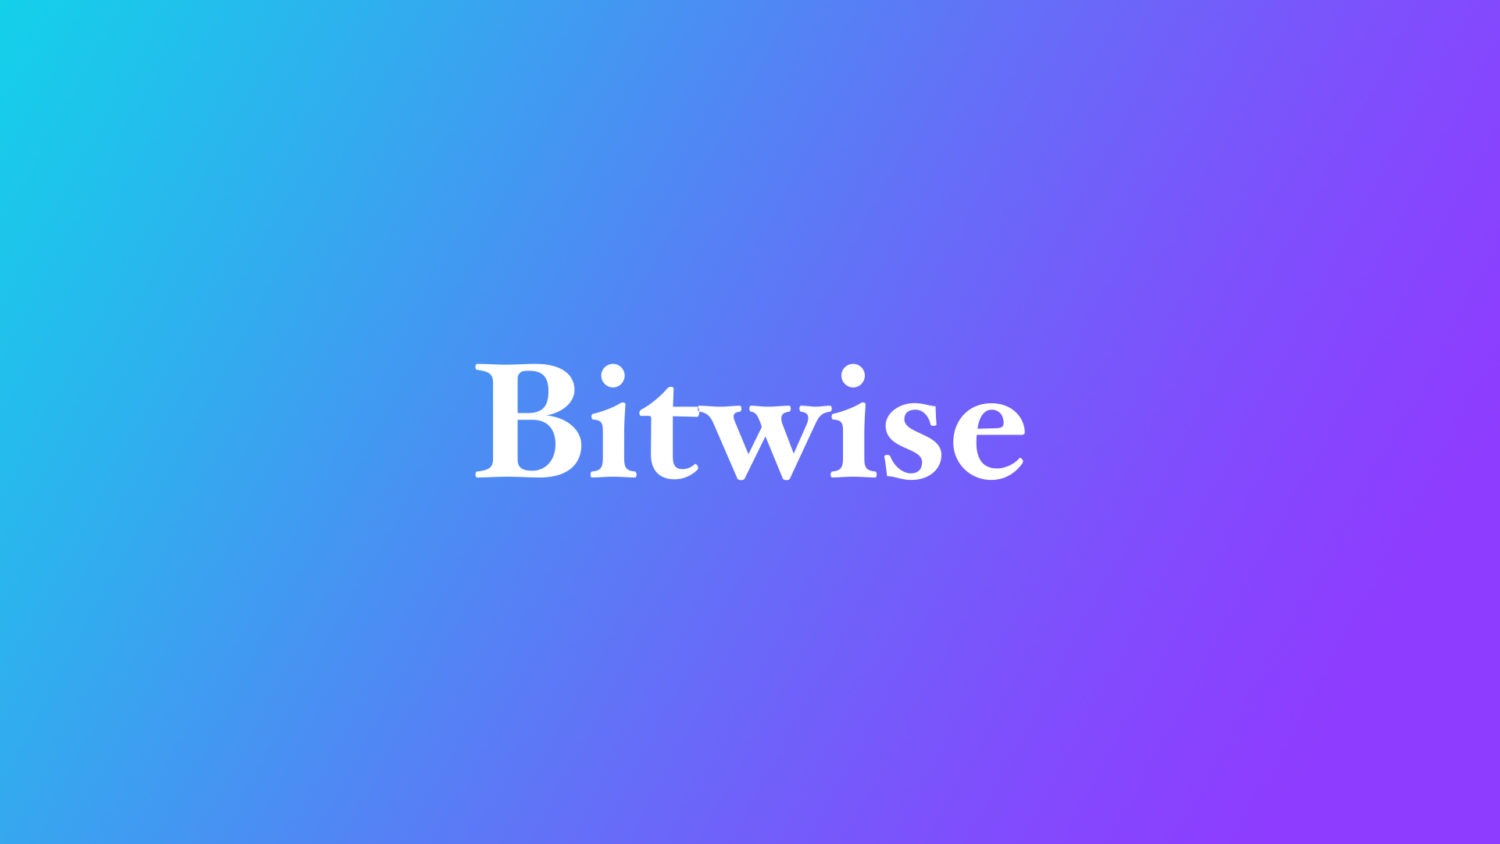 Crypto fund manager Bitwise hires former federal prosecutor as general counsel